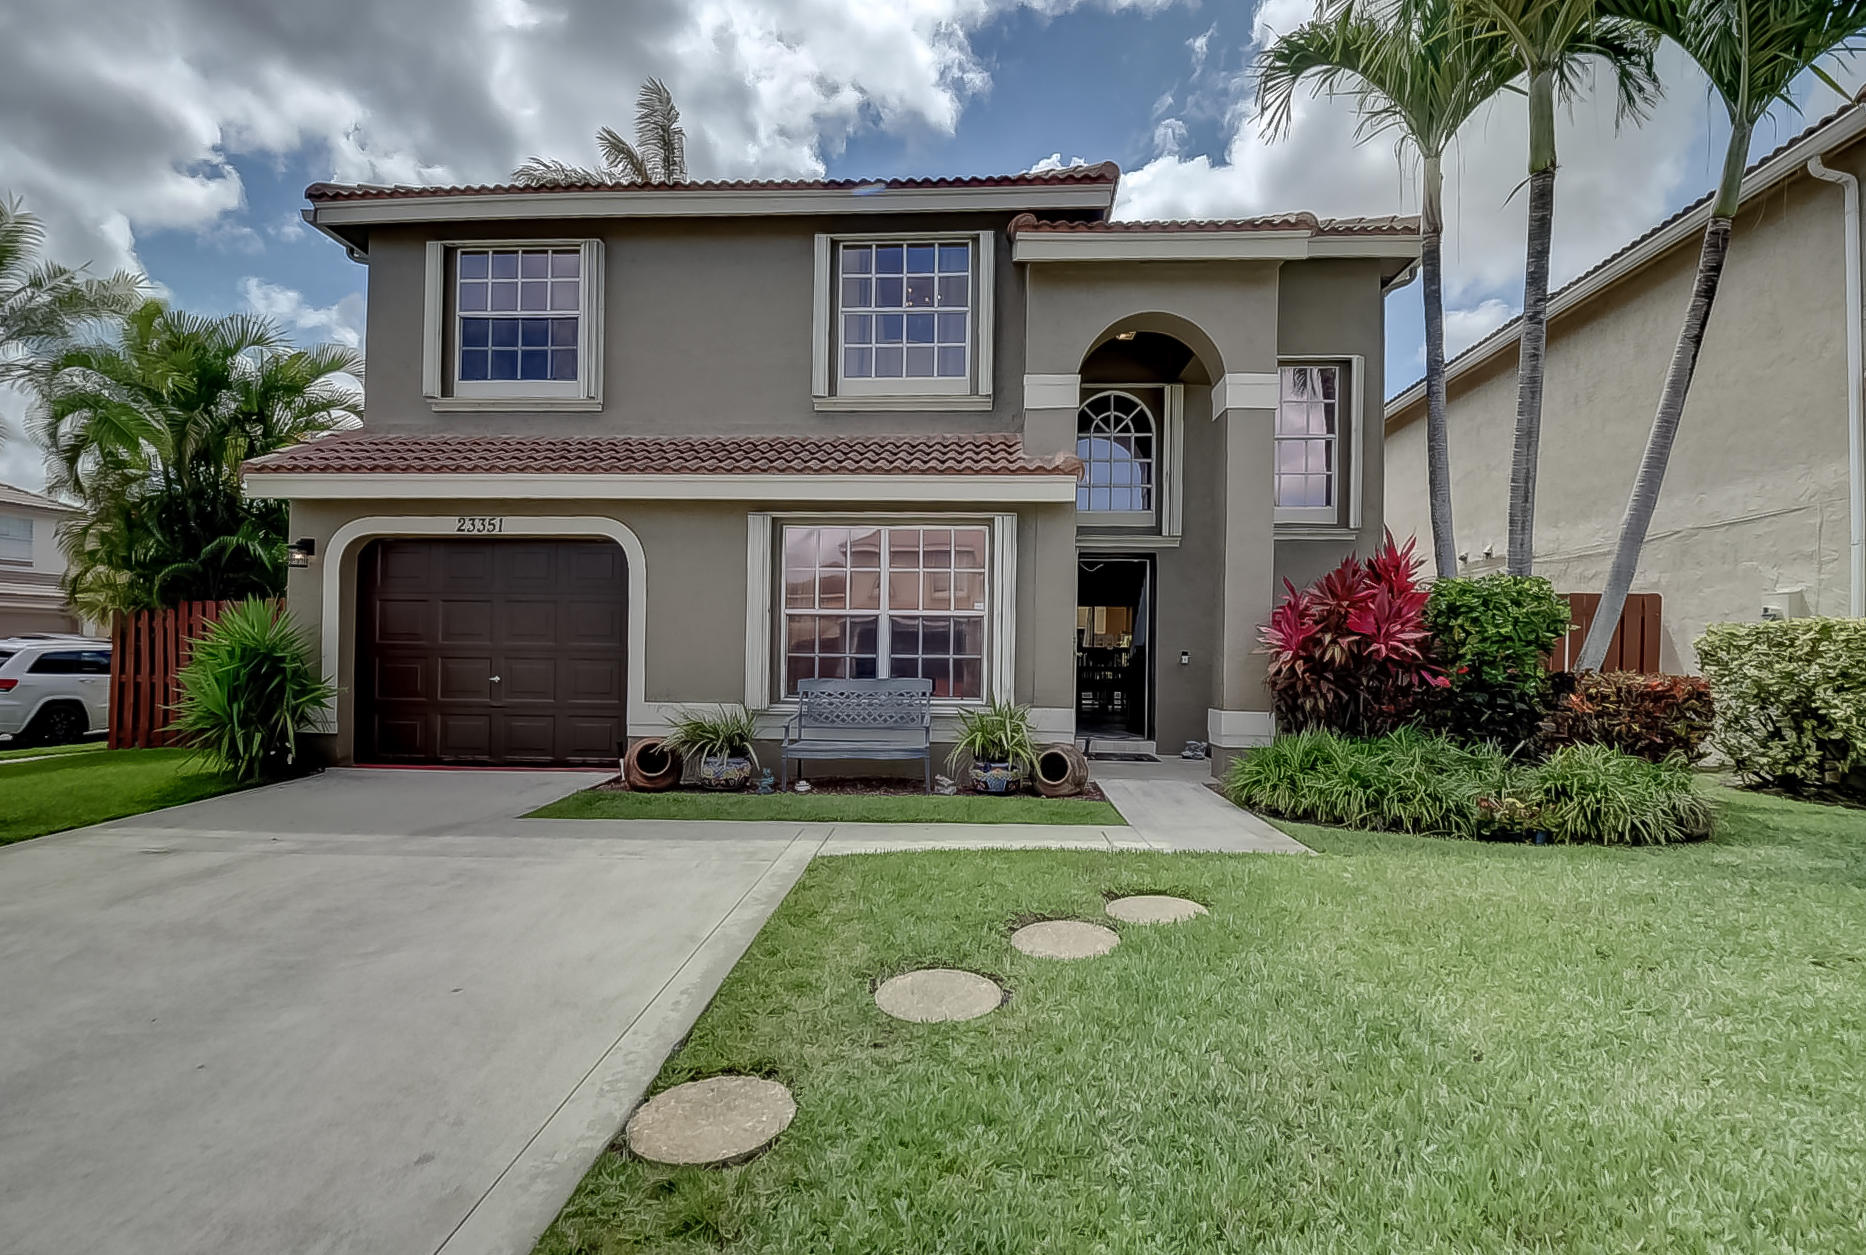 23351  Sunview Way  For Sale 10716319, FL